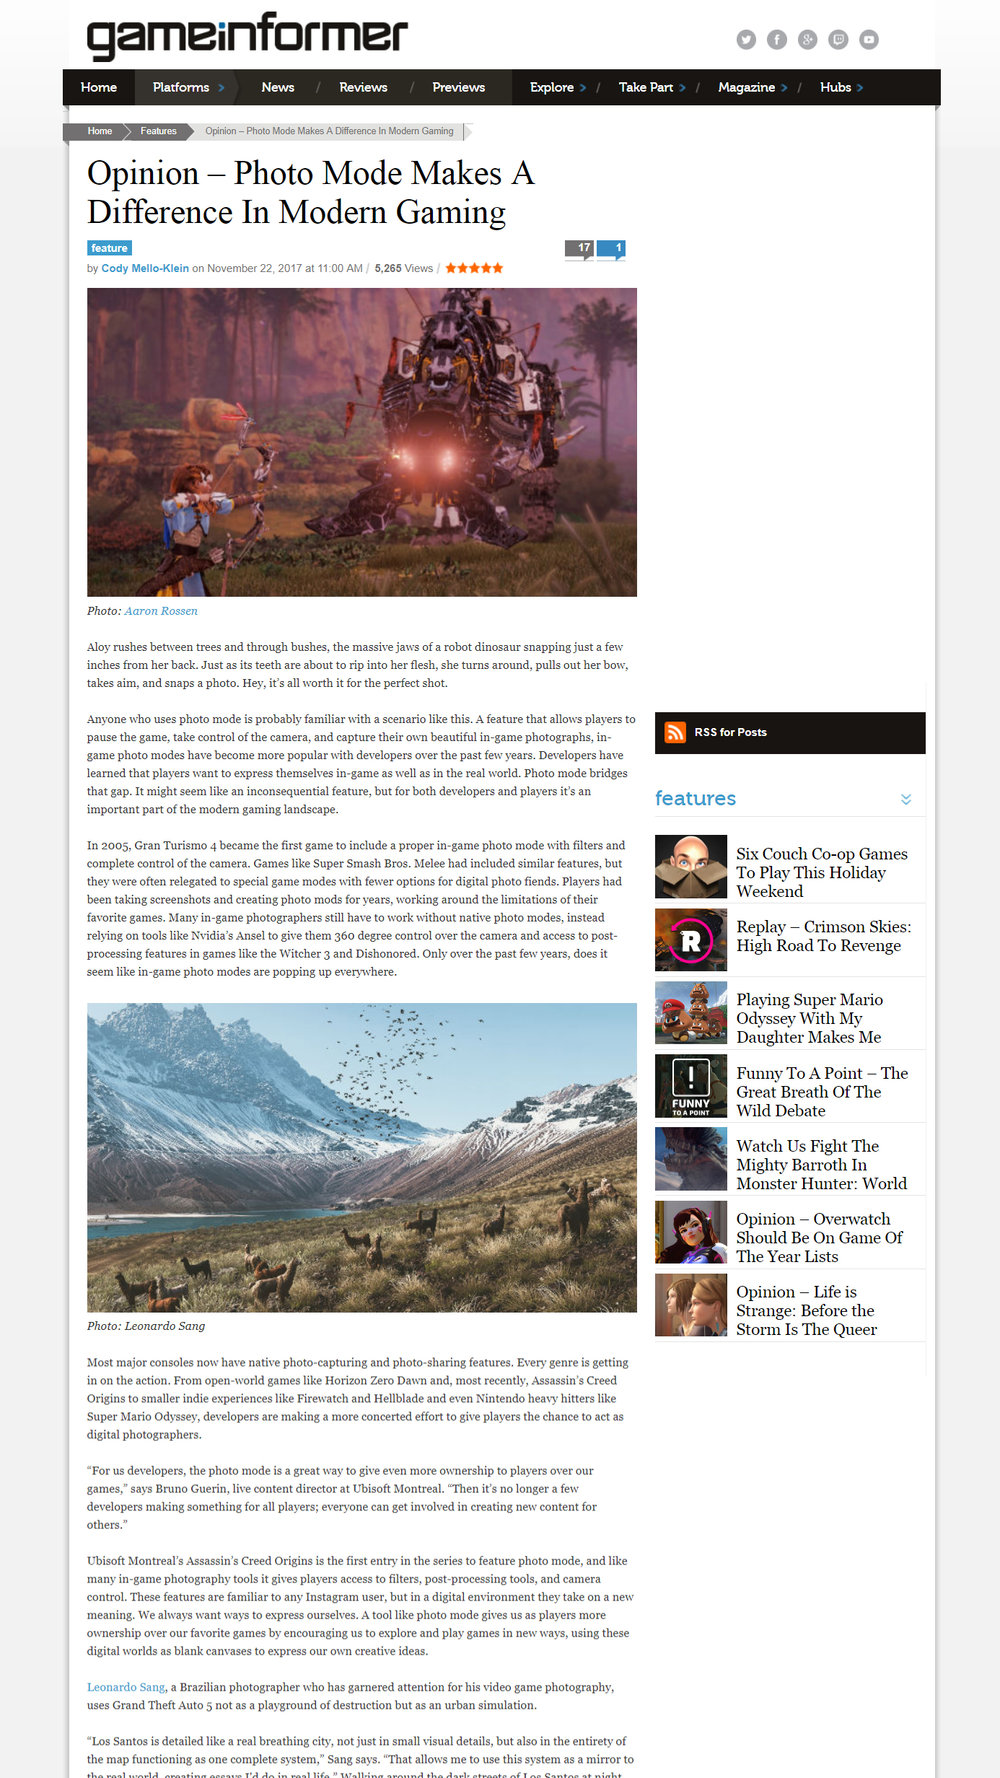 gameinformer34.jpg